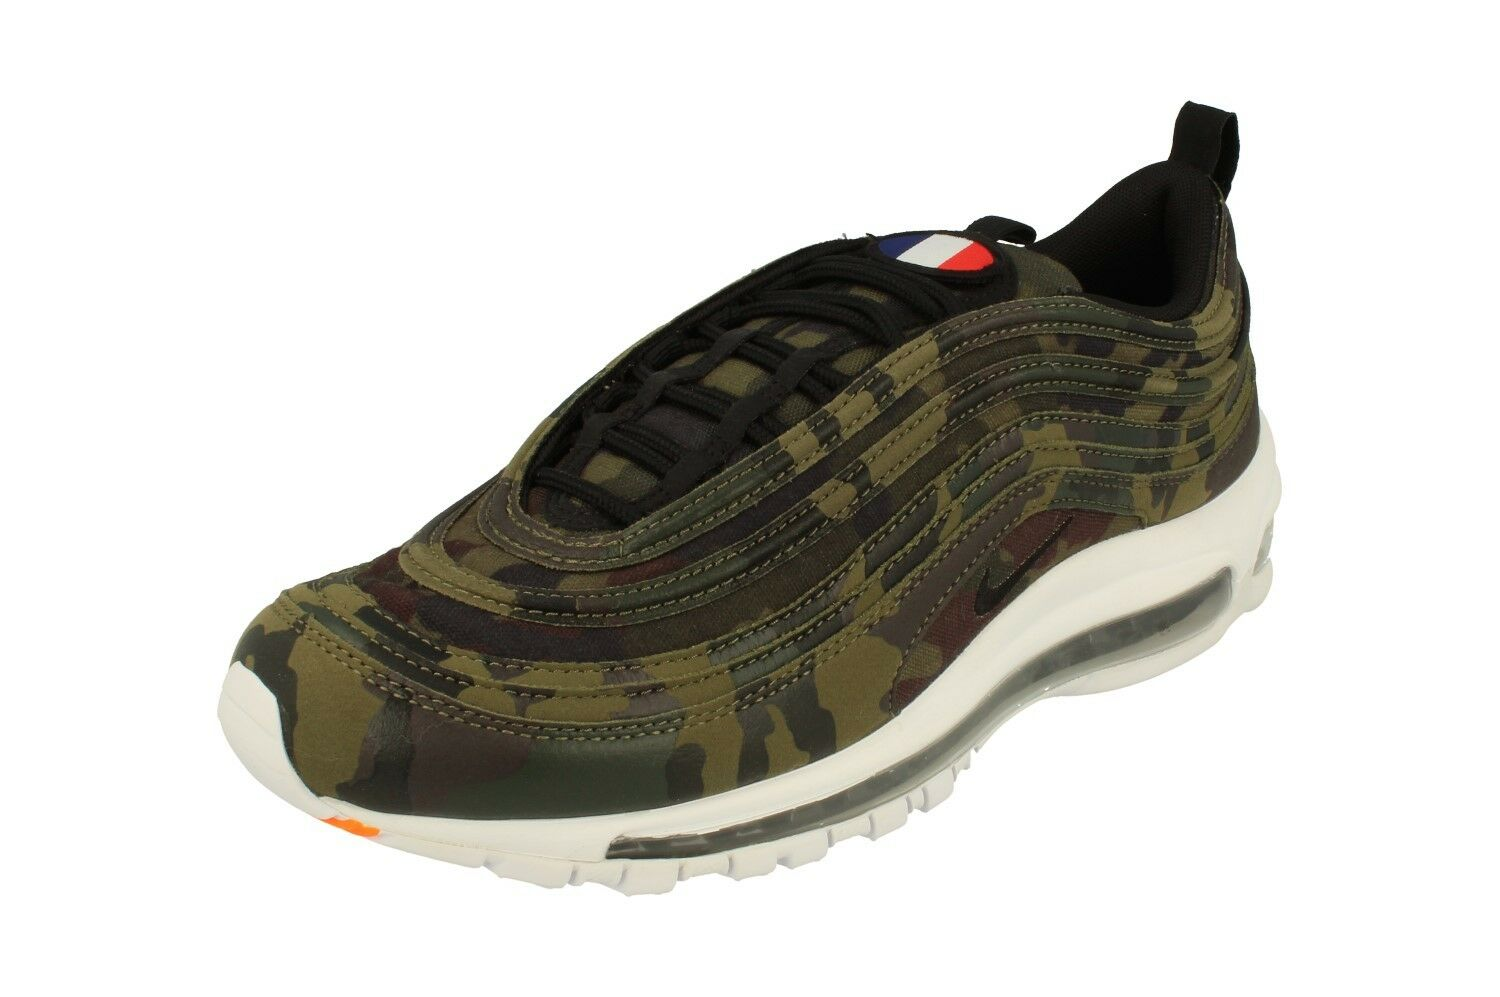 Nike Air Max 97 Premium QS Mens Running Trainers Aj2614 Sneakers Shoes 200